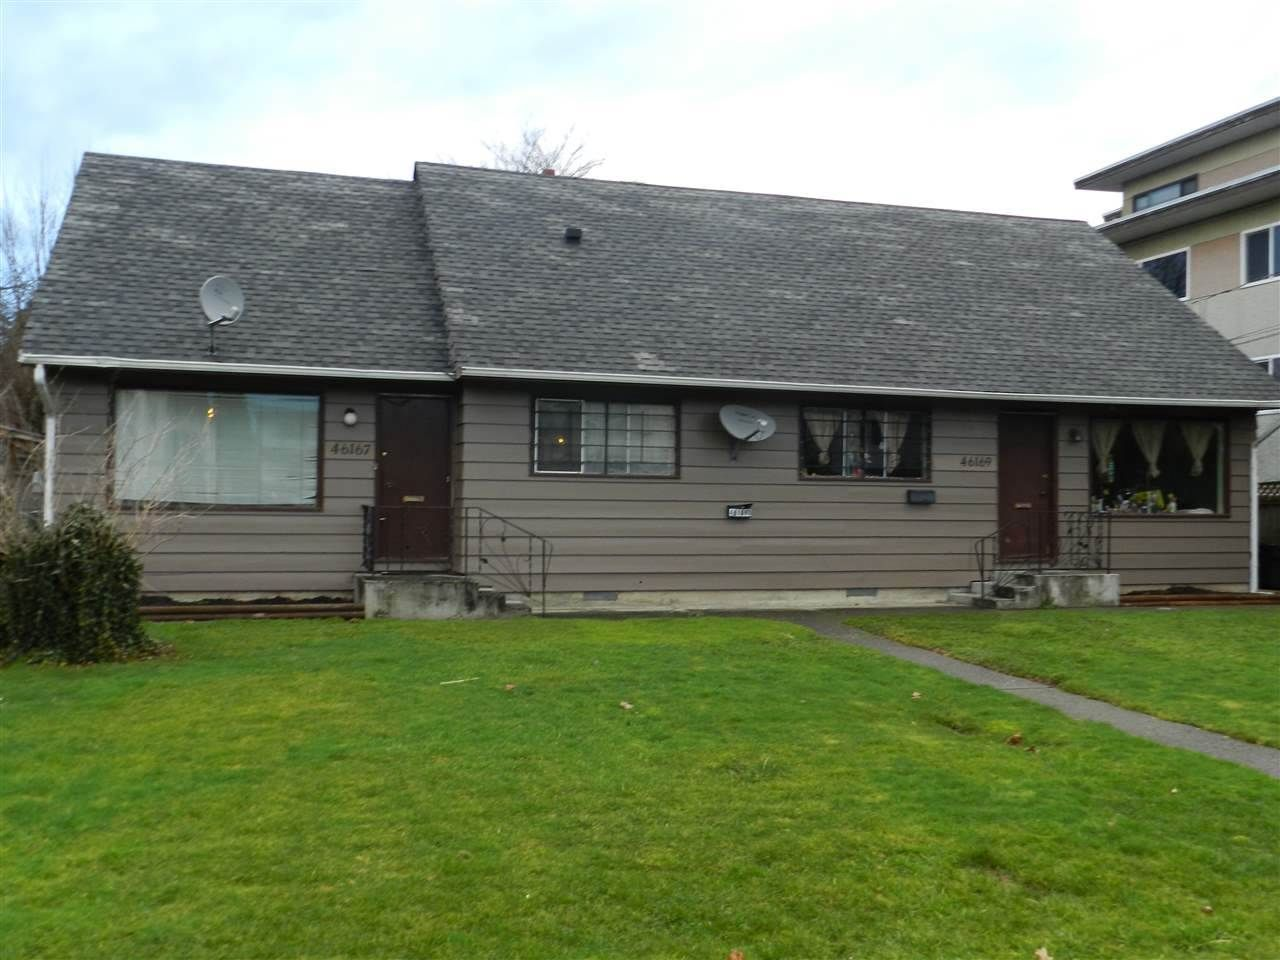 Main Photo: 46167 PRINCESS Avenue in Chilliwack: Chilliwack E Young-Yale Duplex for sale : MLS®# R2116497